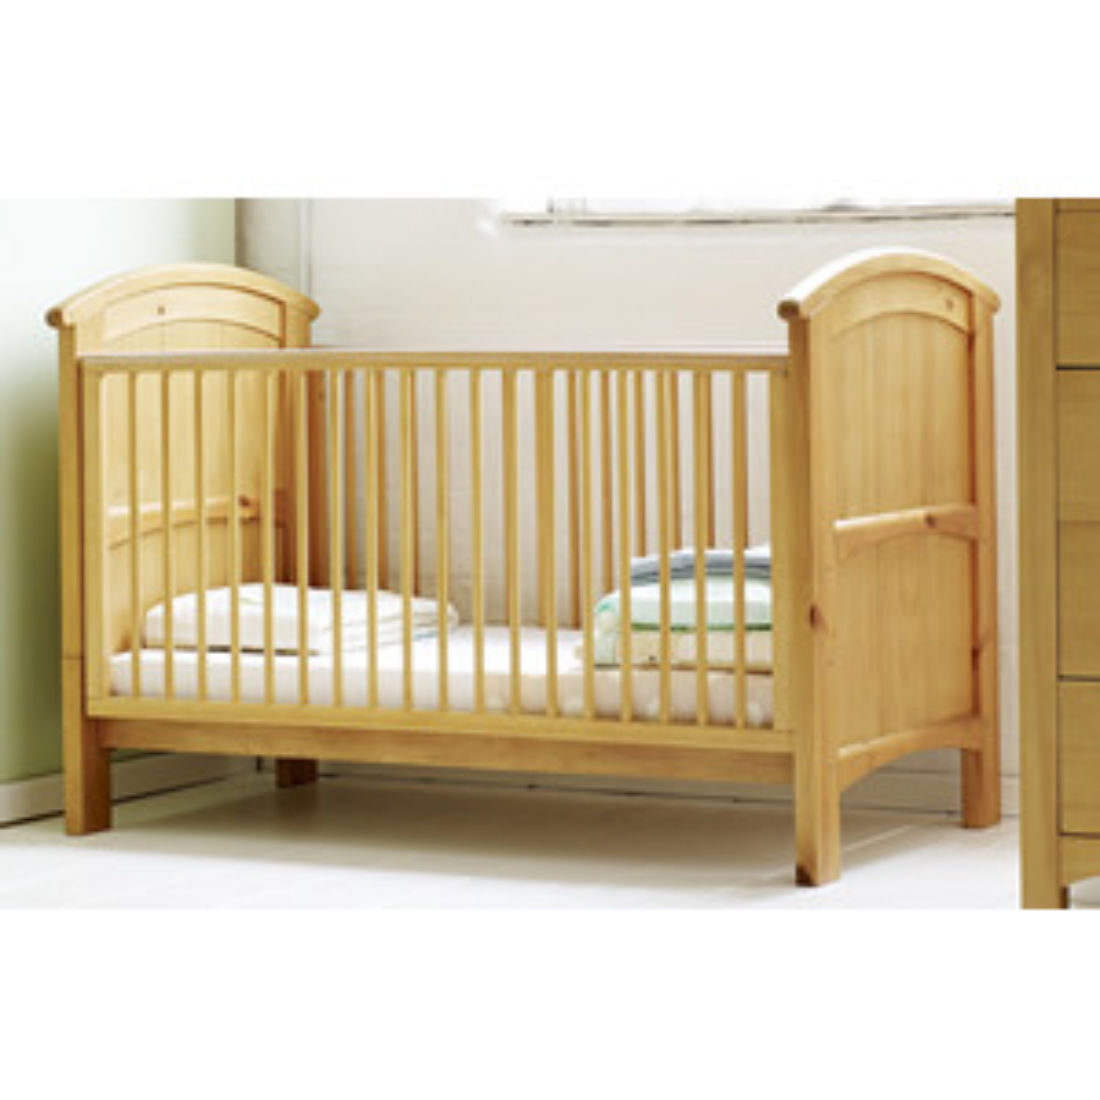 Mattress to fit Cosatto HOGARTH cot bed mattress size is